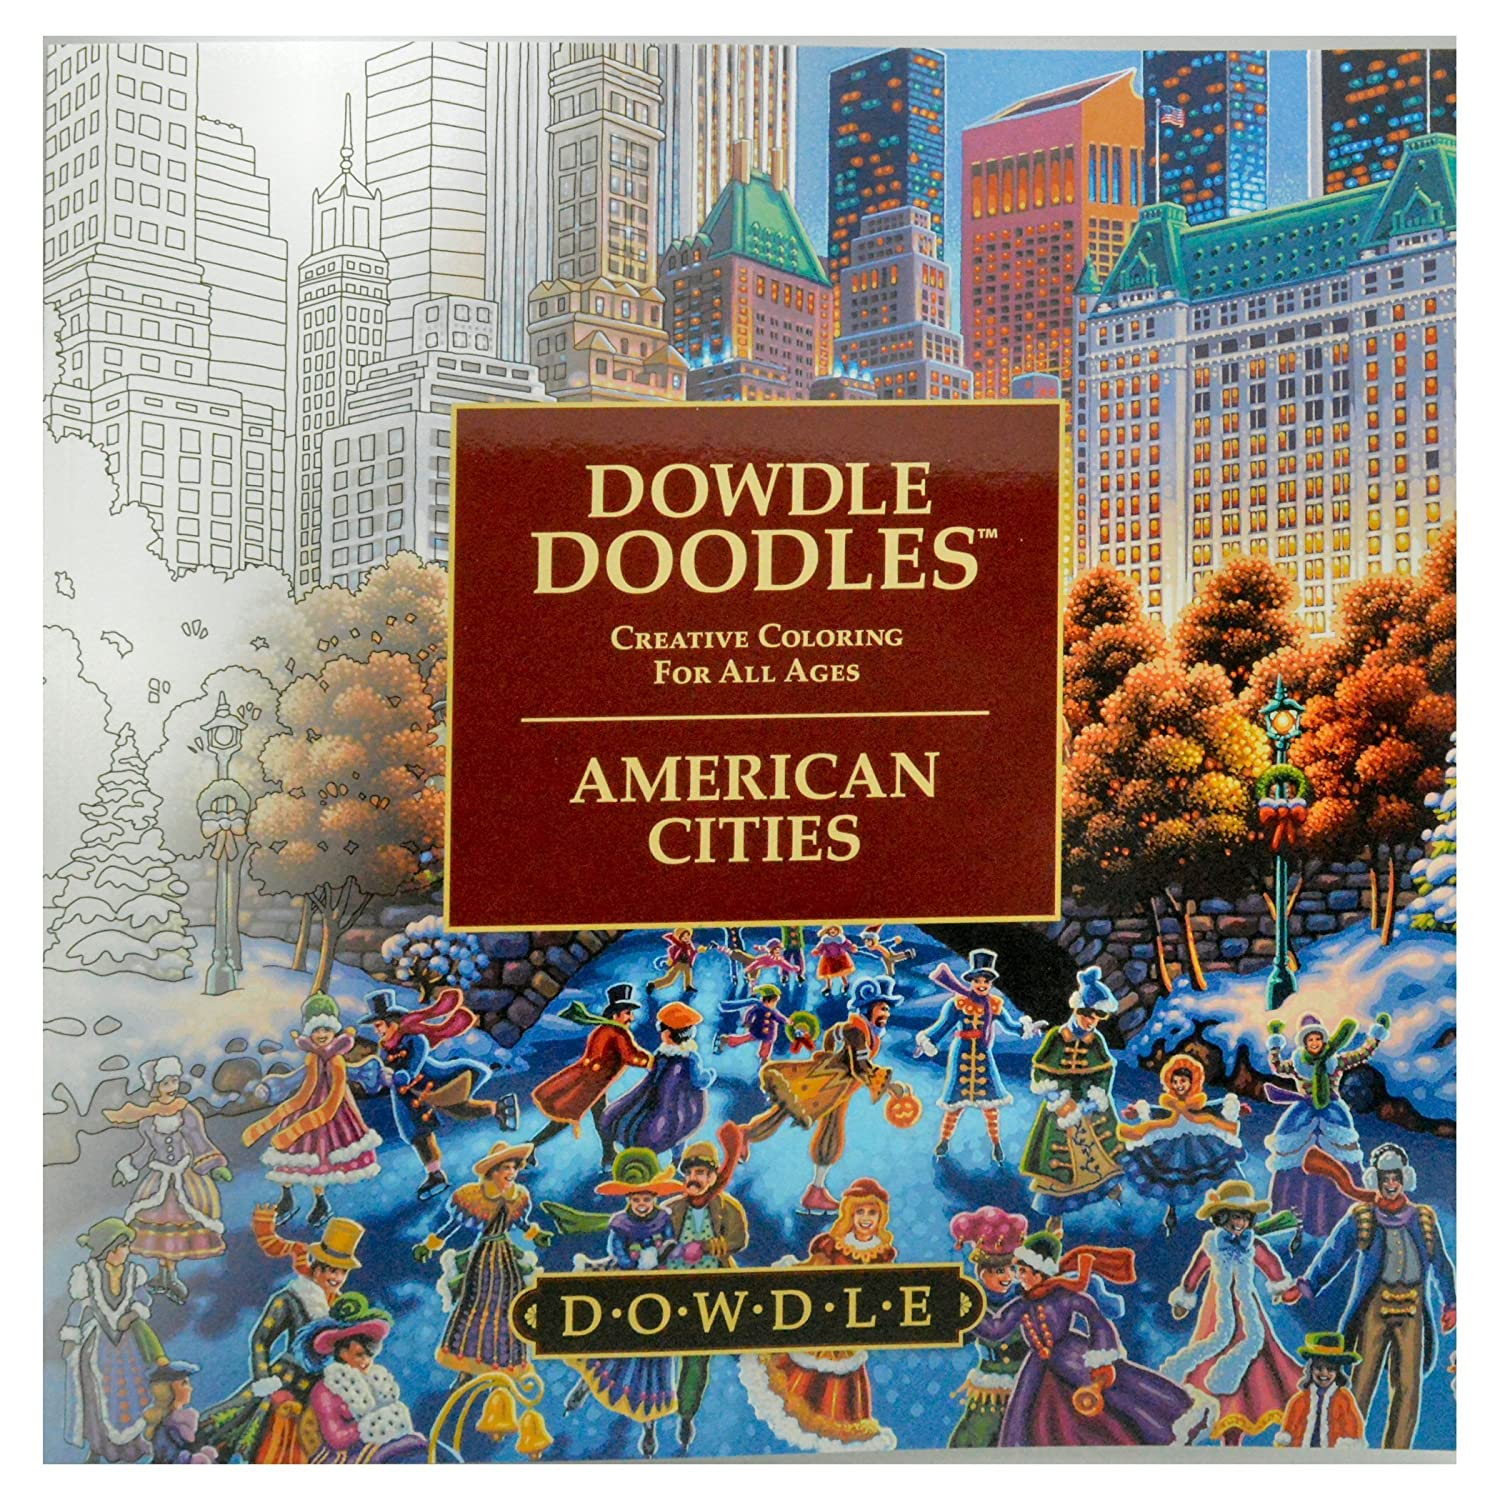 Dowdle Doodles - Adult and Family Coloring Book - American Cities by Dowdle Doodles